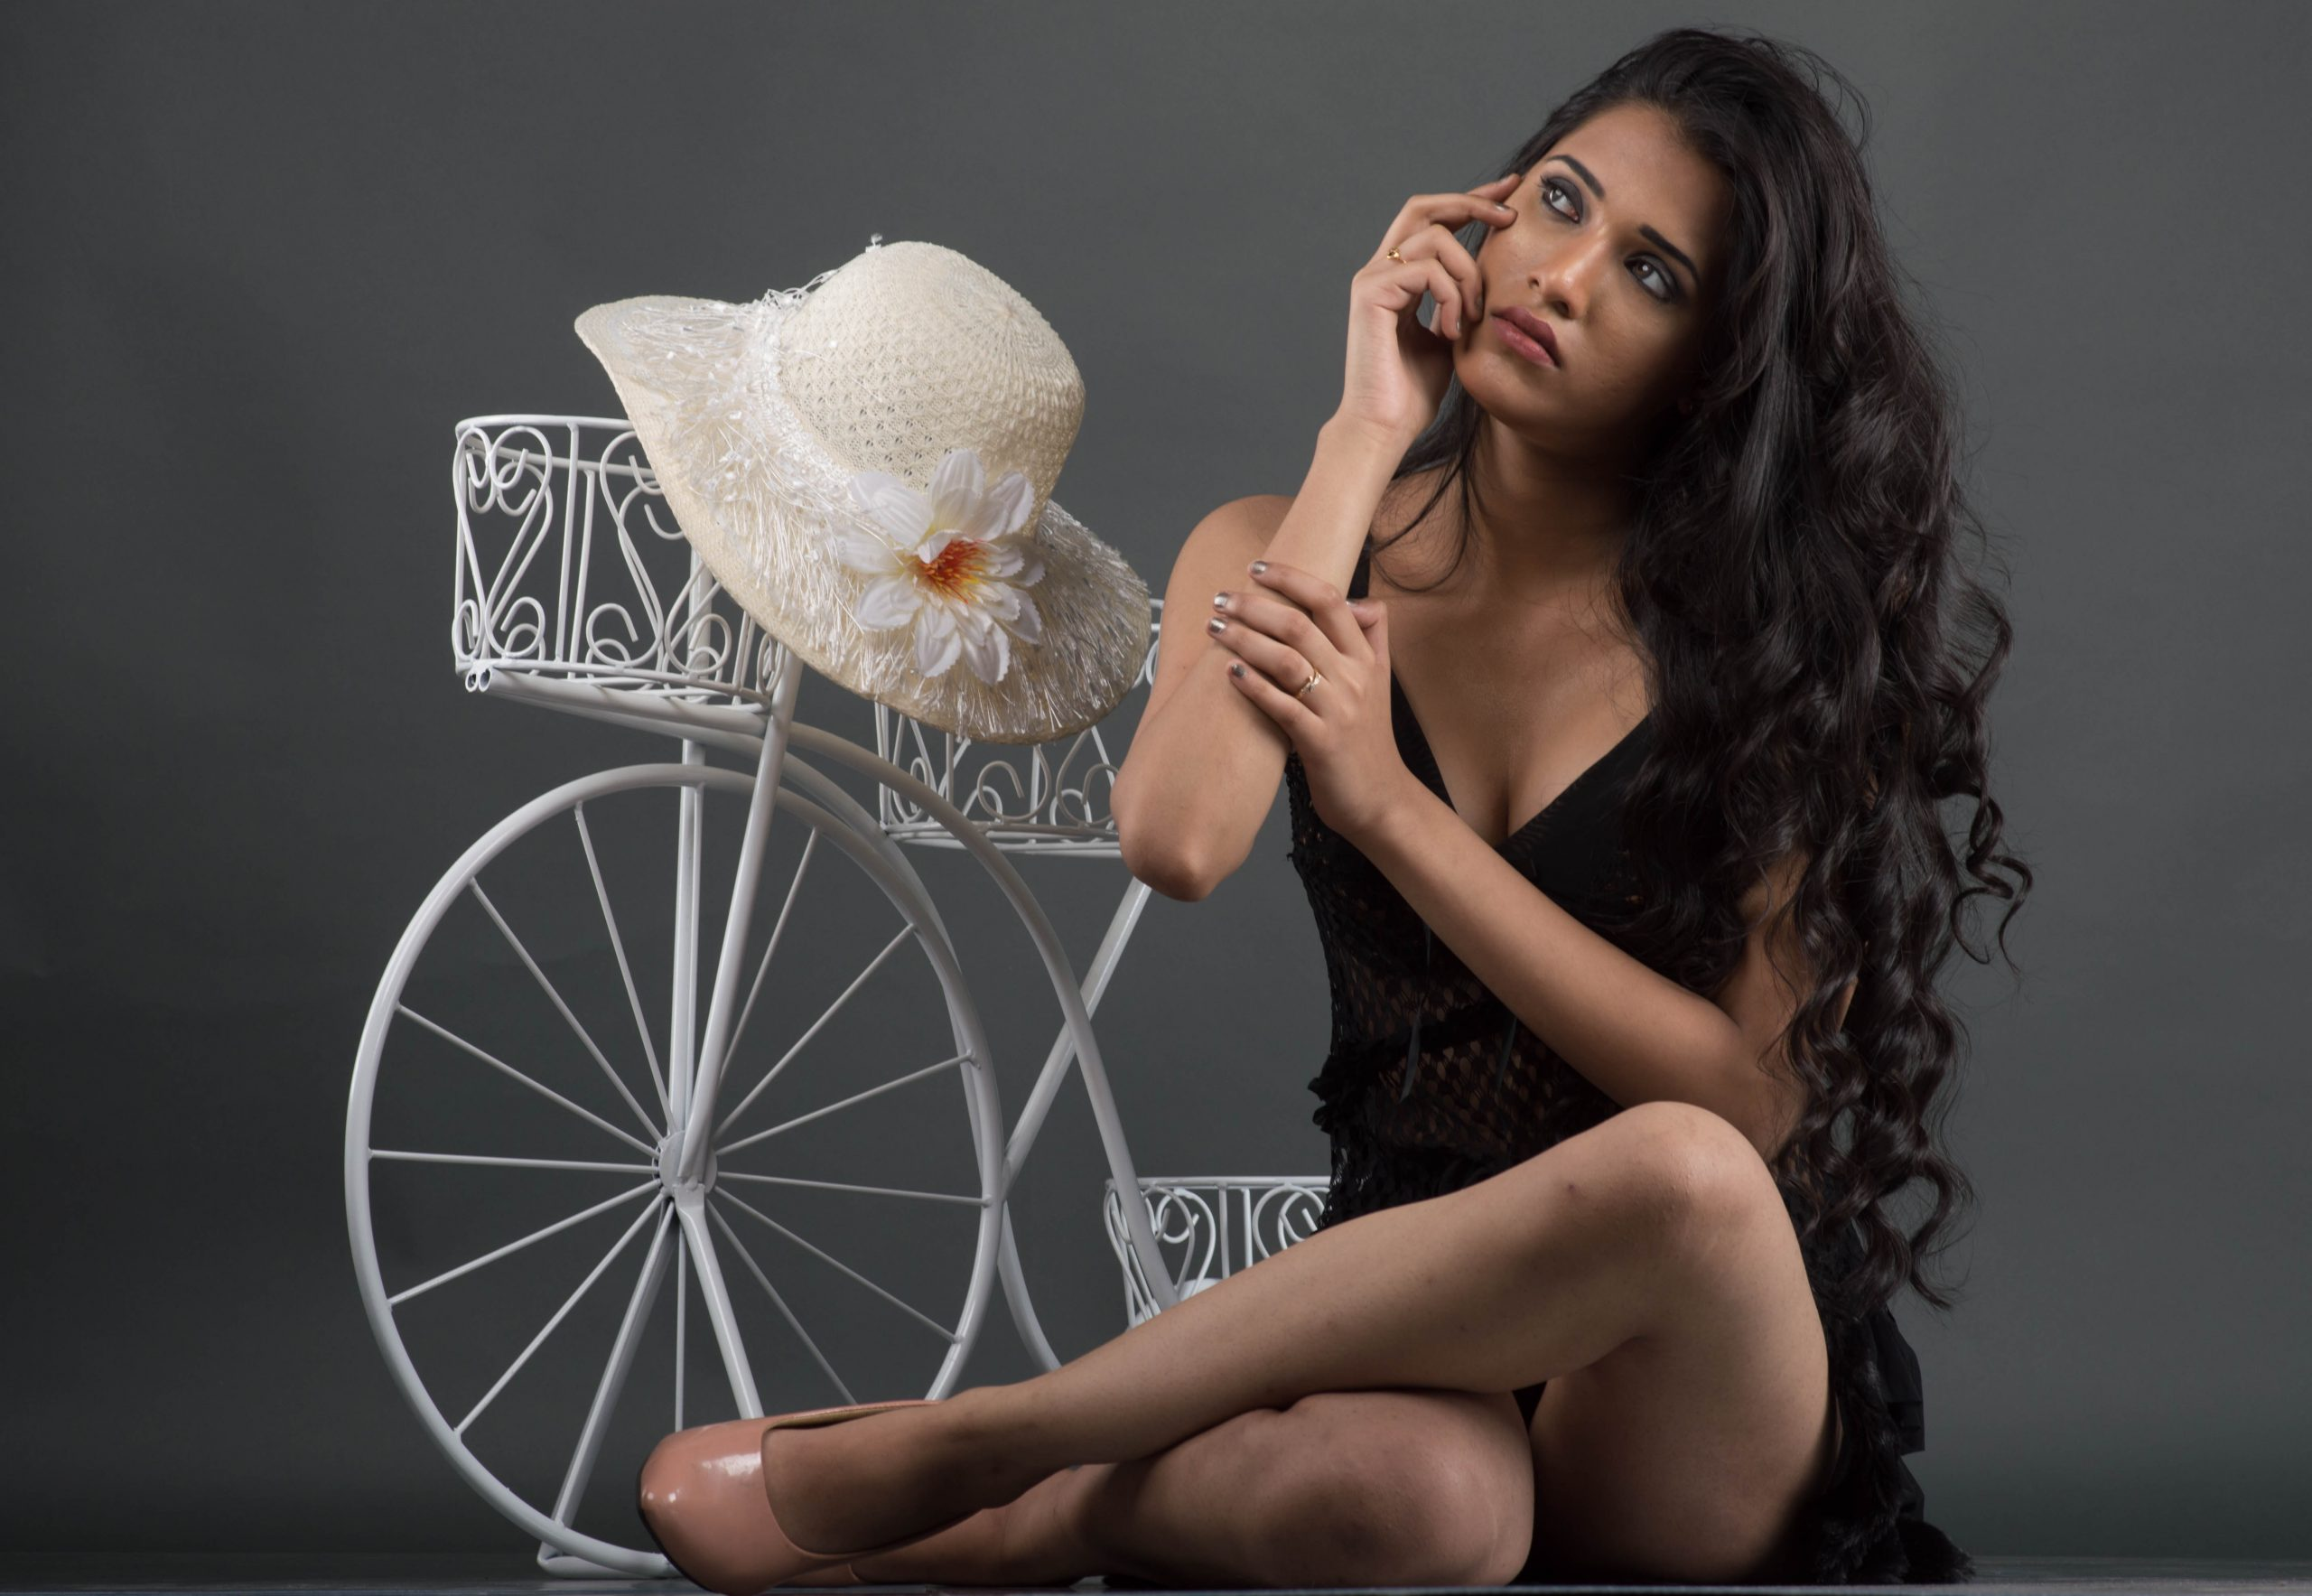 Female model posing near the cycle